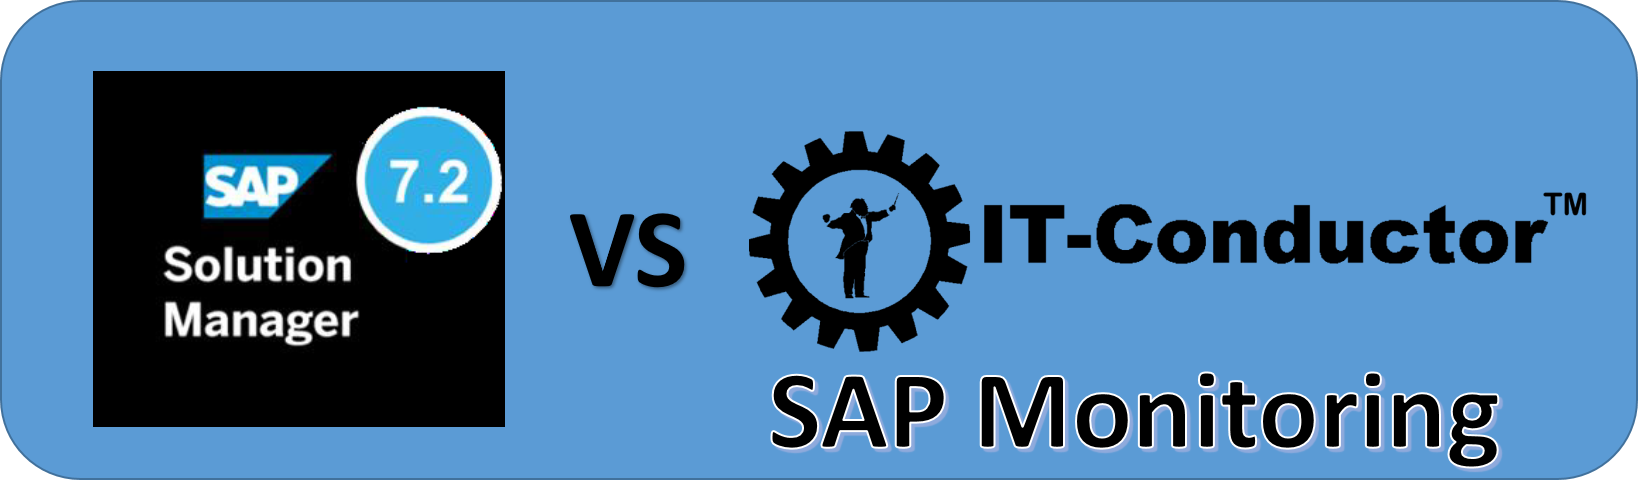 SAP-Solution-Manager-vs-IT-Conductor-for-SAP-Monitoring.png